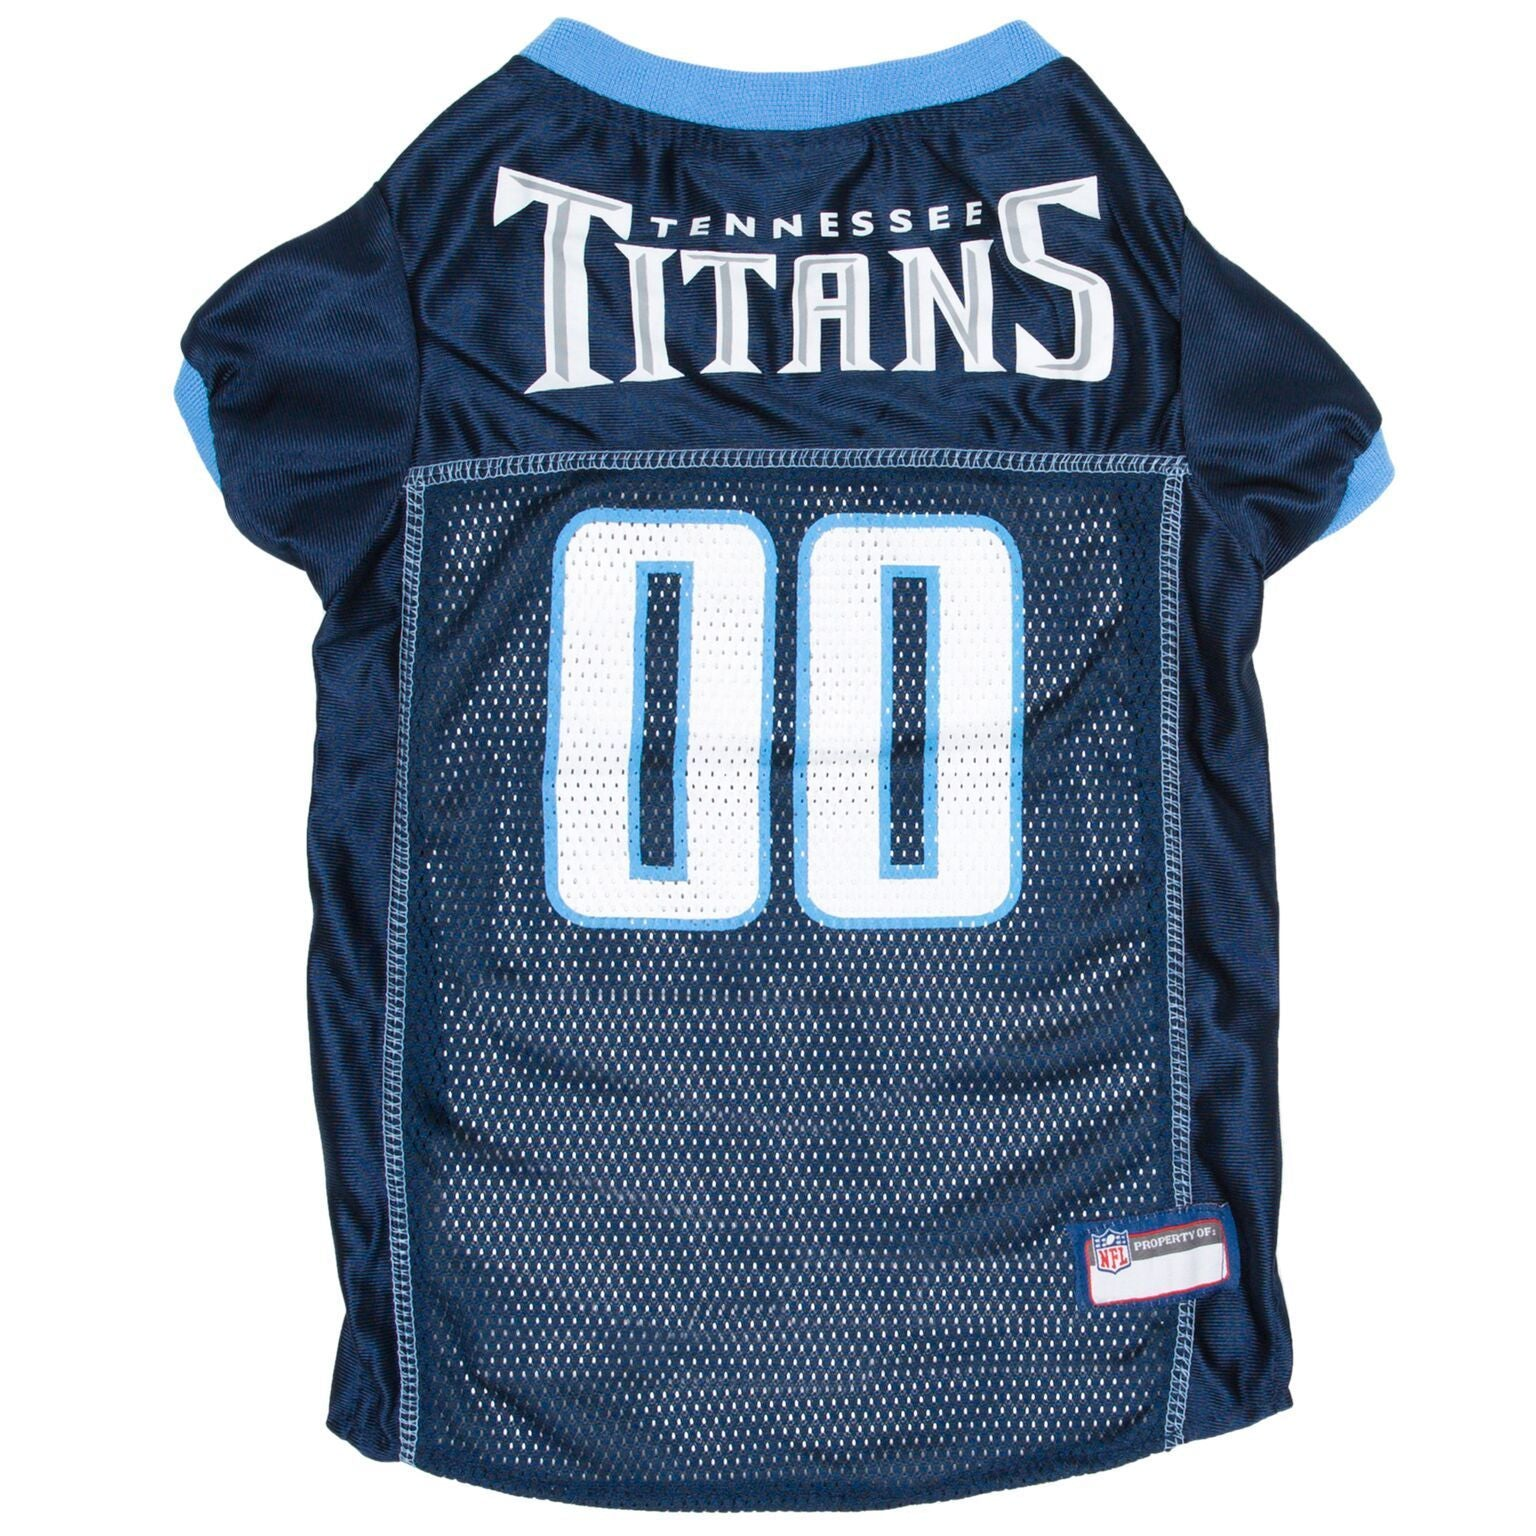 tennessee titans baseball jersey